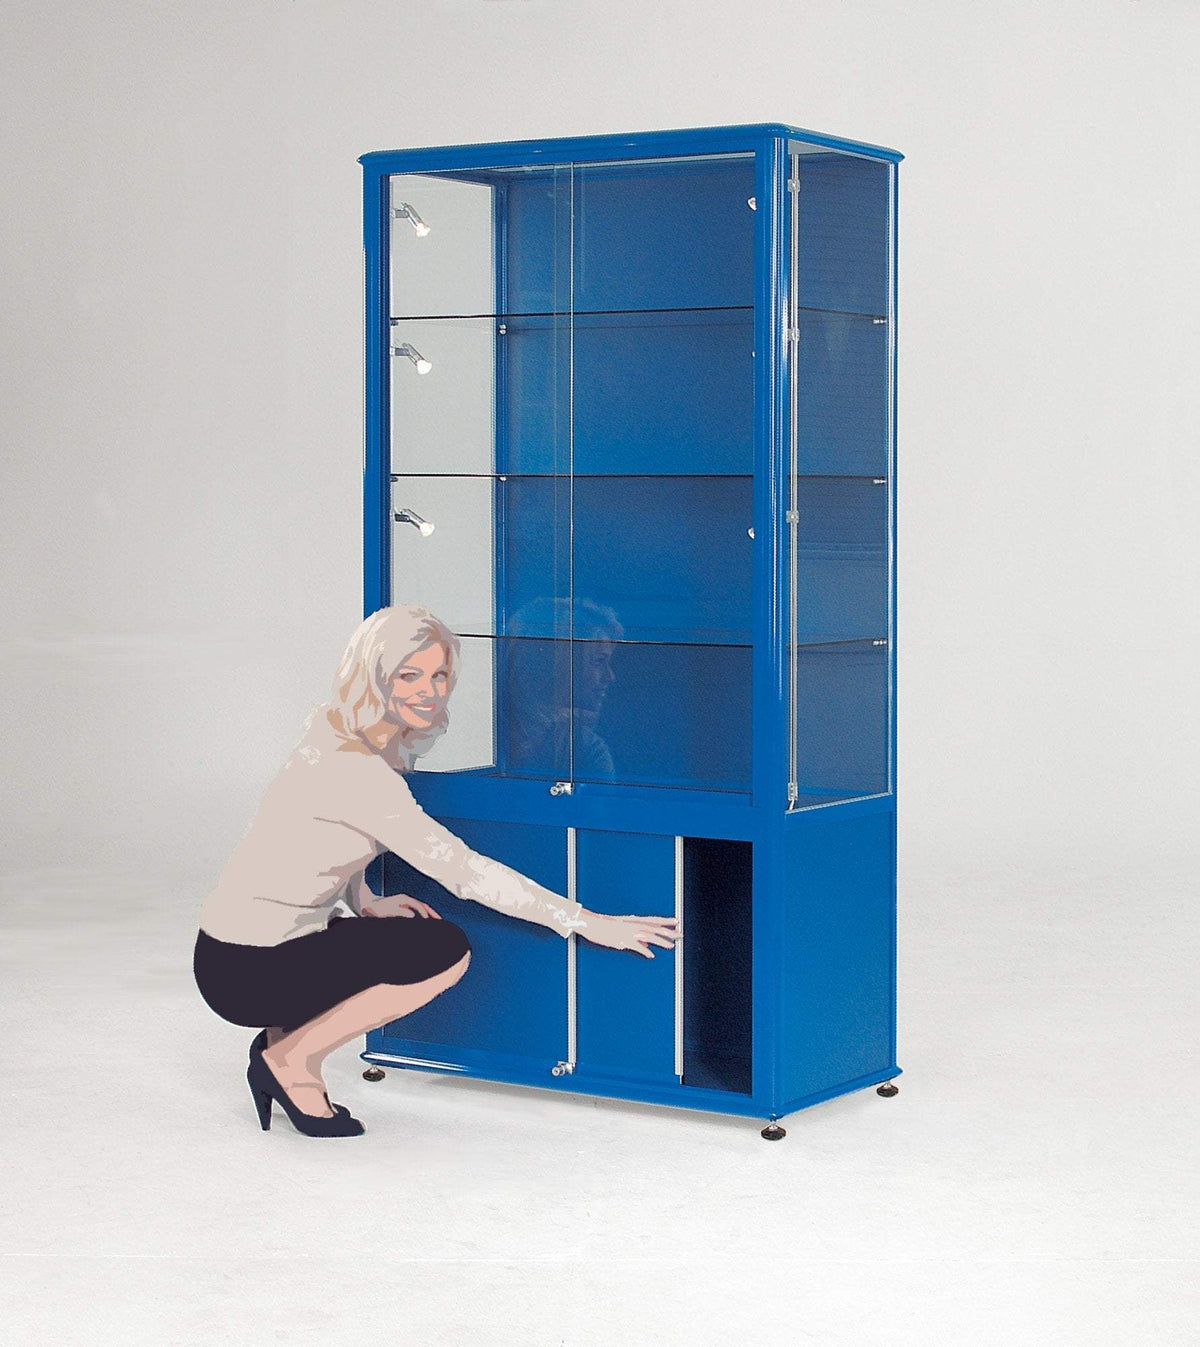 display cabinet h2000 x w1200 x d600 mm / Aluminium / No Illumination Premium Glazed Tower Display Case with Cupboard h2000 x w1200 x d600 mm / Aluminium / No Illumination